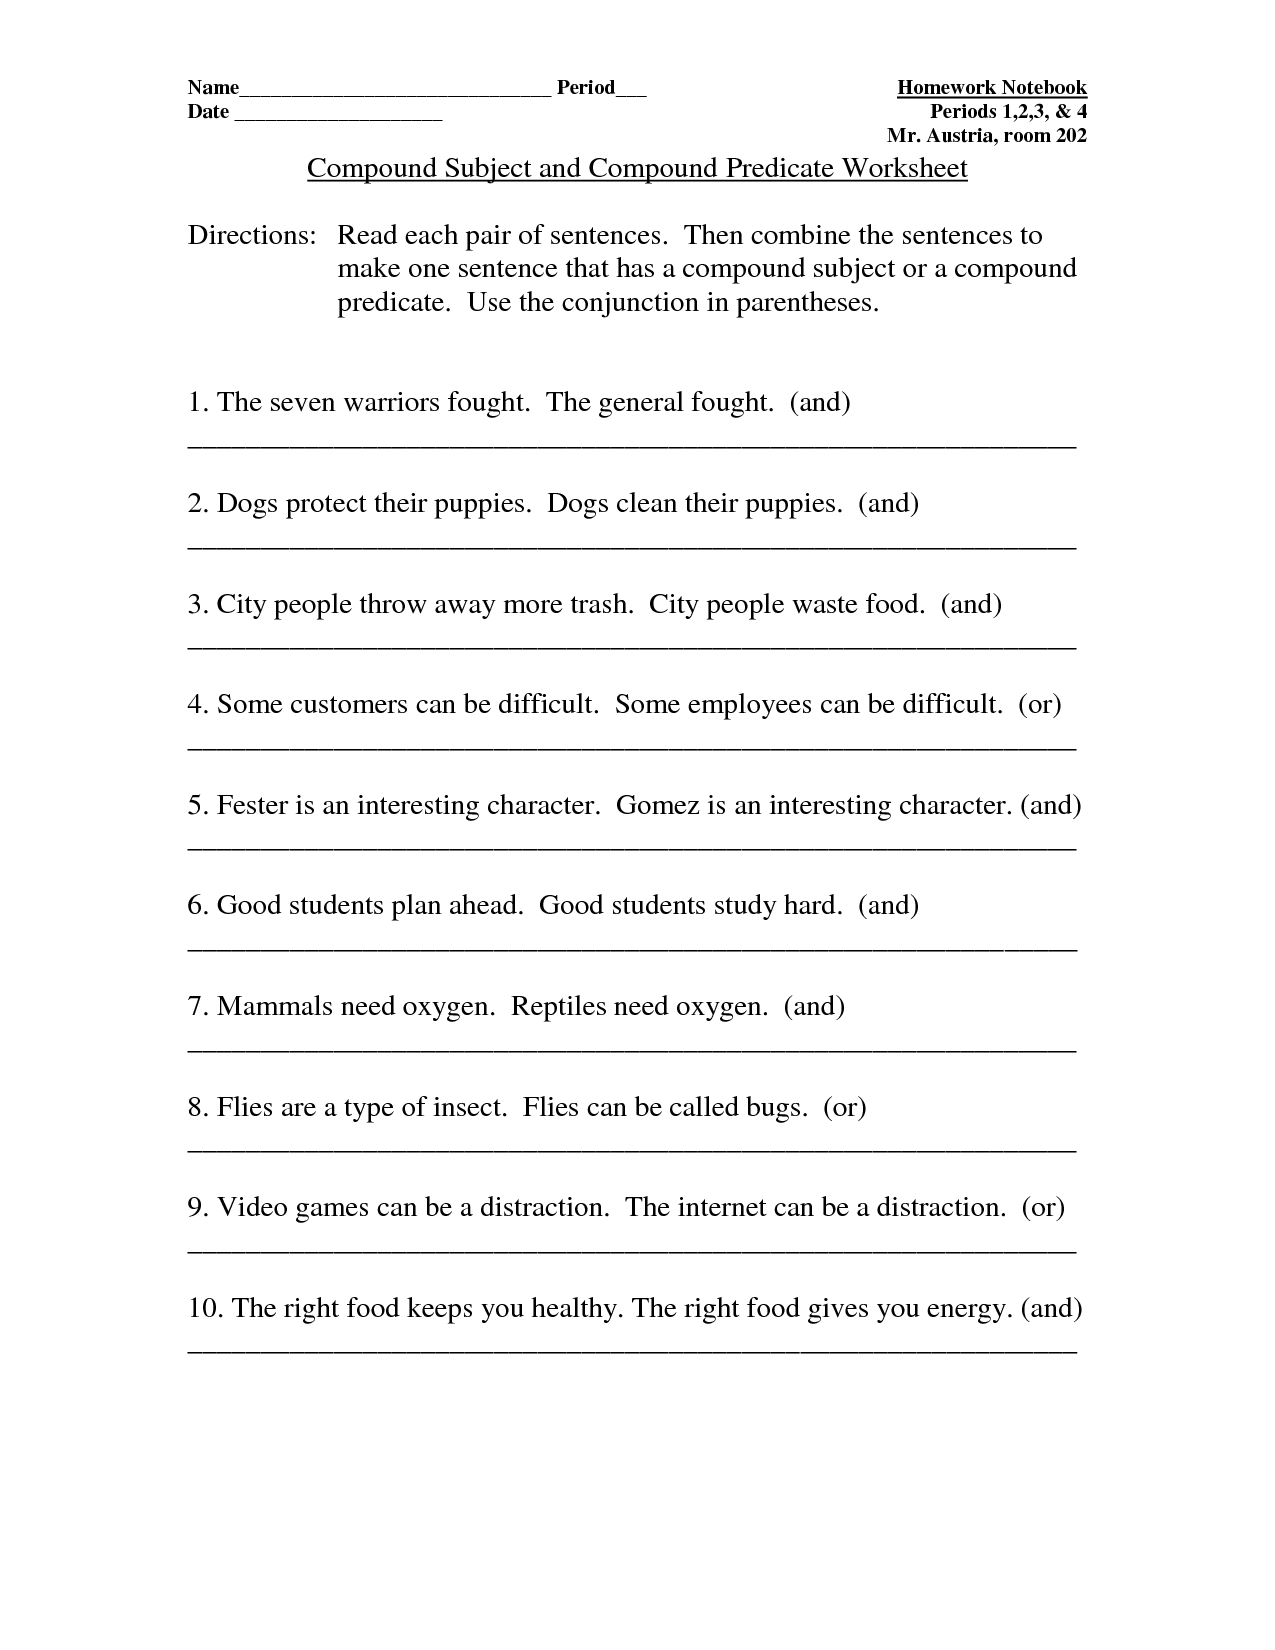 Compound Predicate Worksheet